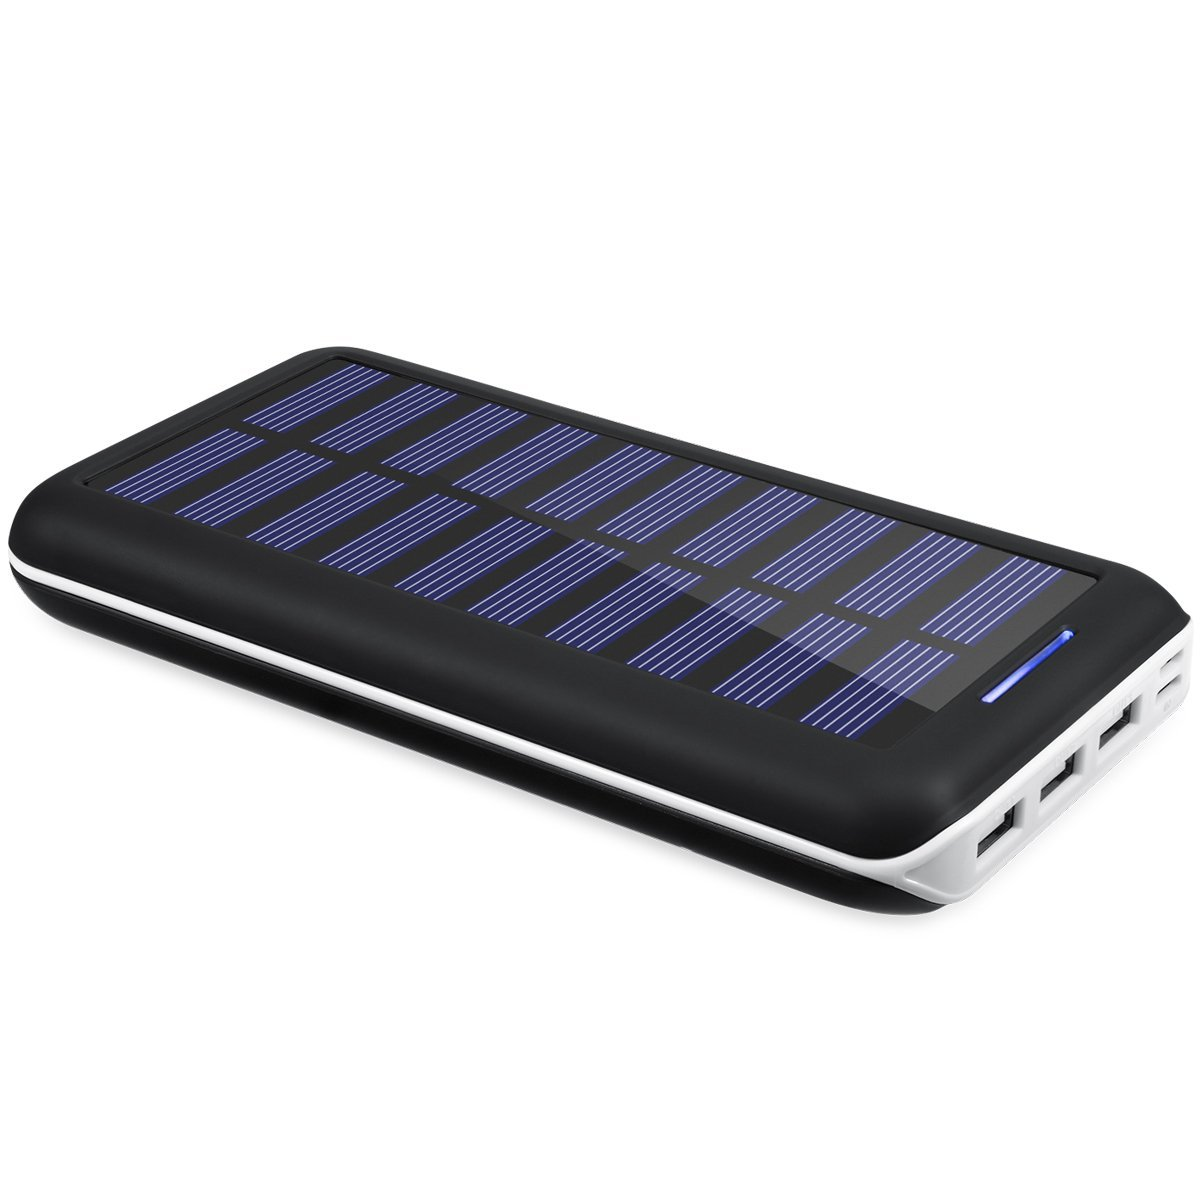 Portable Chargers Kedron 22000 Solar Charger 22000mah External Casan 3usb Samsung Battery Pack 2 Port Input 3 Usb Output Power Banks Or Iphone Ipad And Galaxy